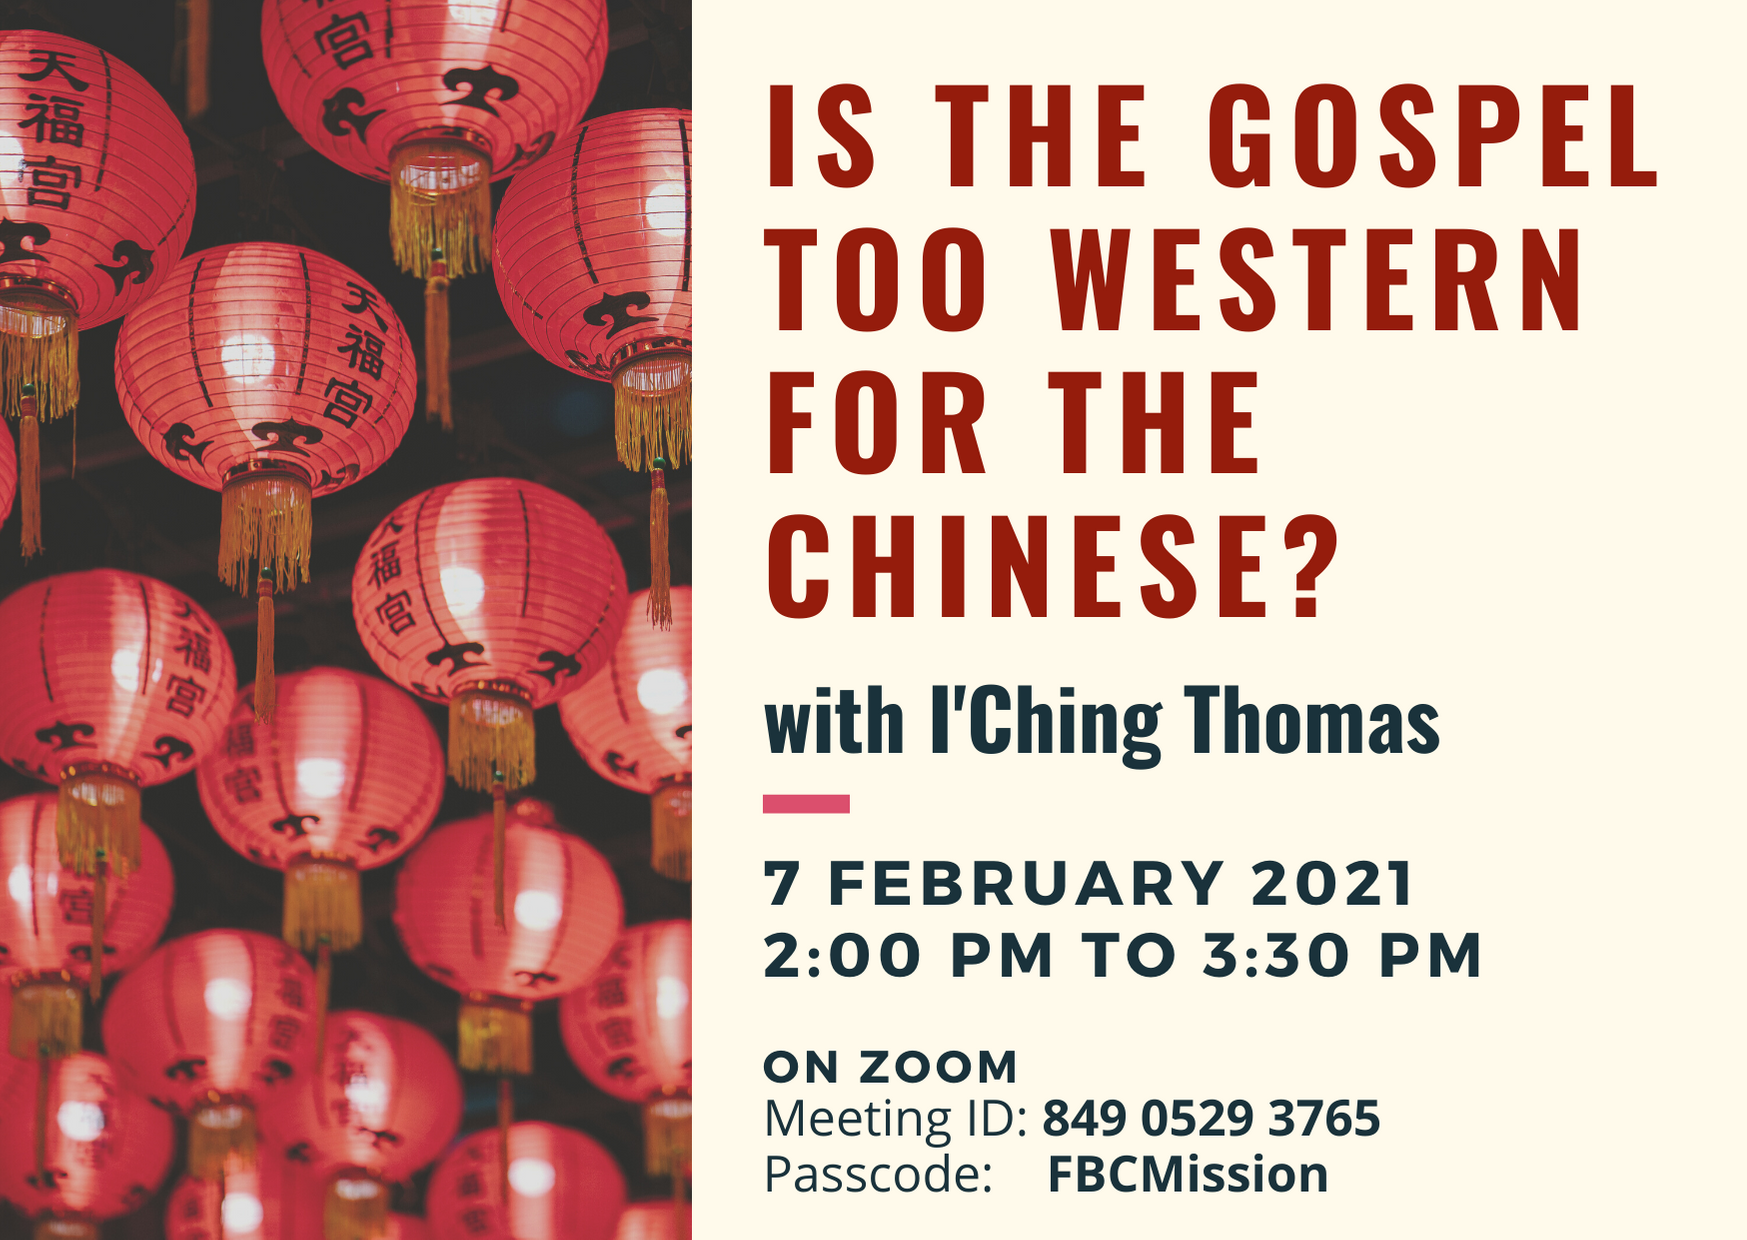 20210207-Webinar-Is-the-Gospel-too-Western-for-the-Chinese-v31